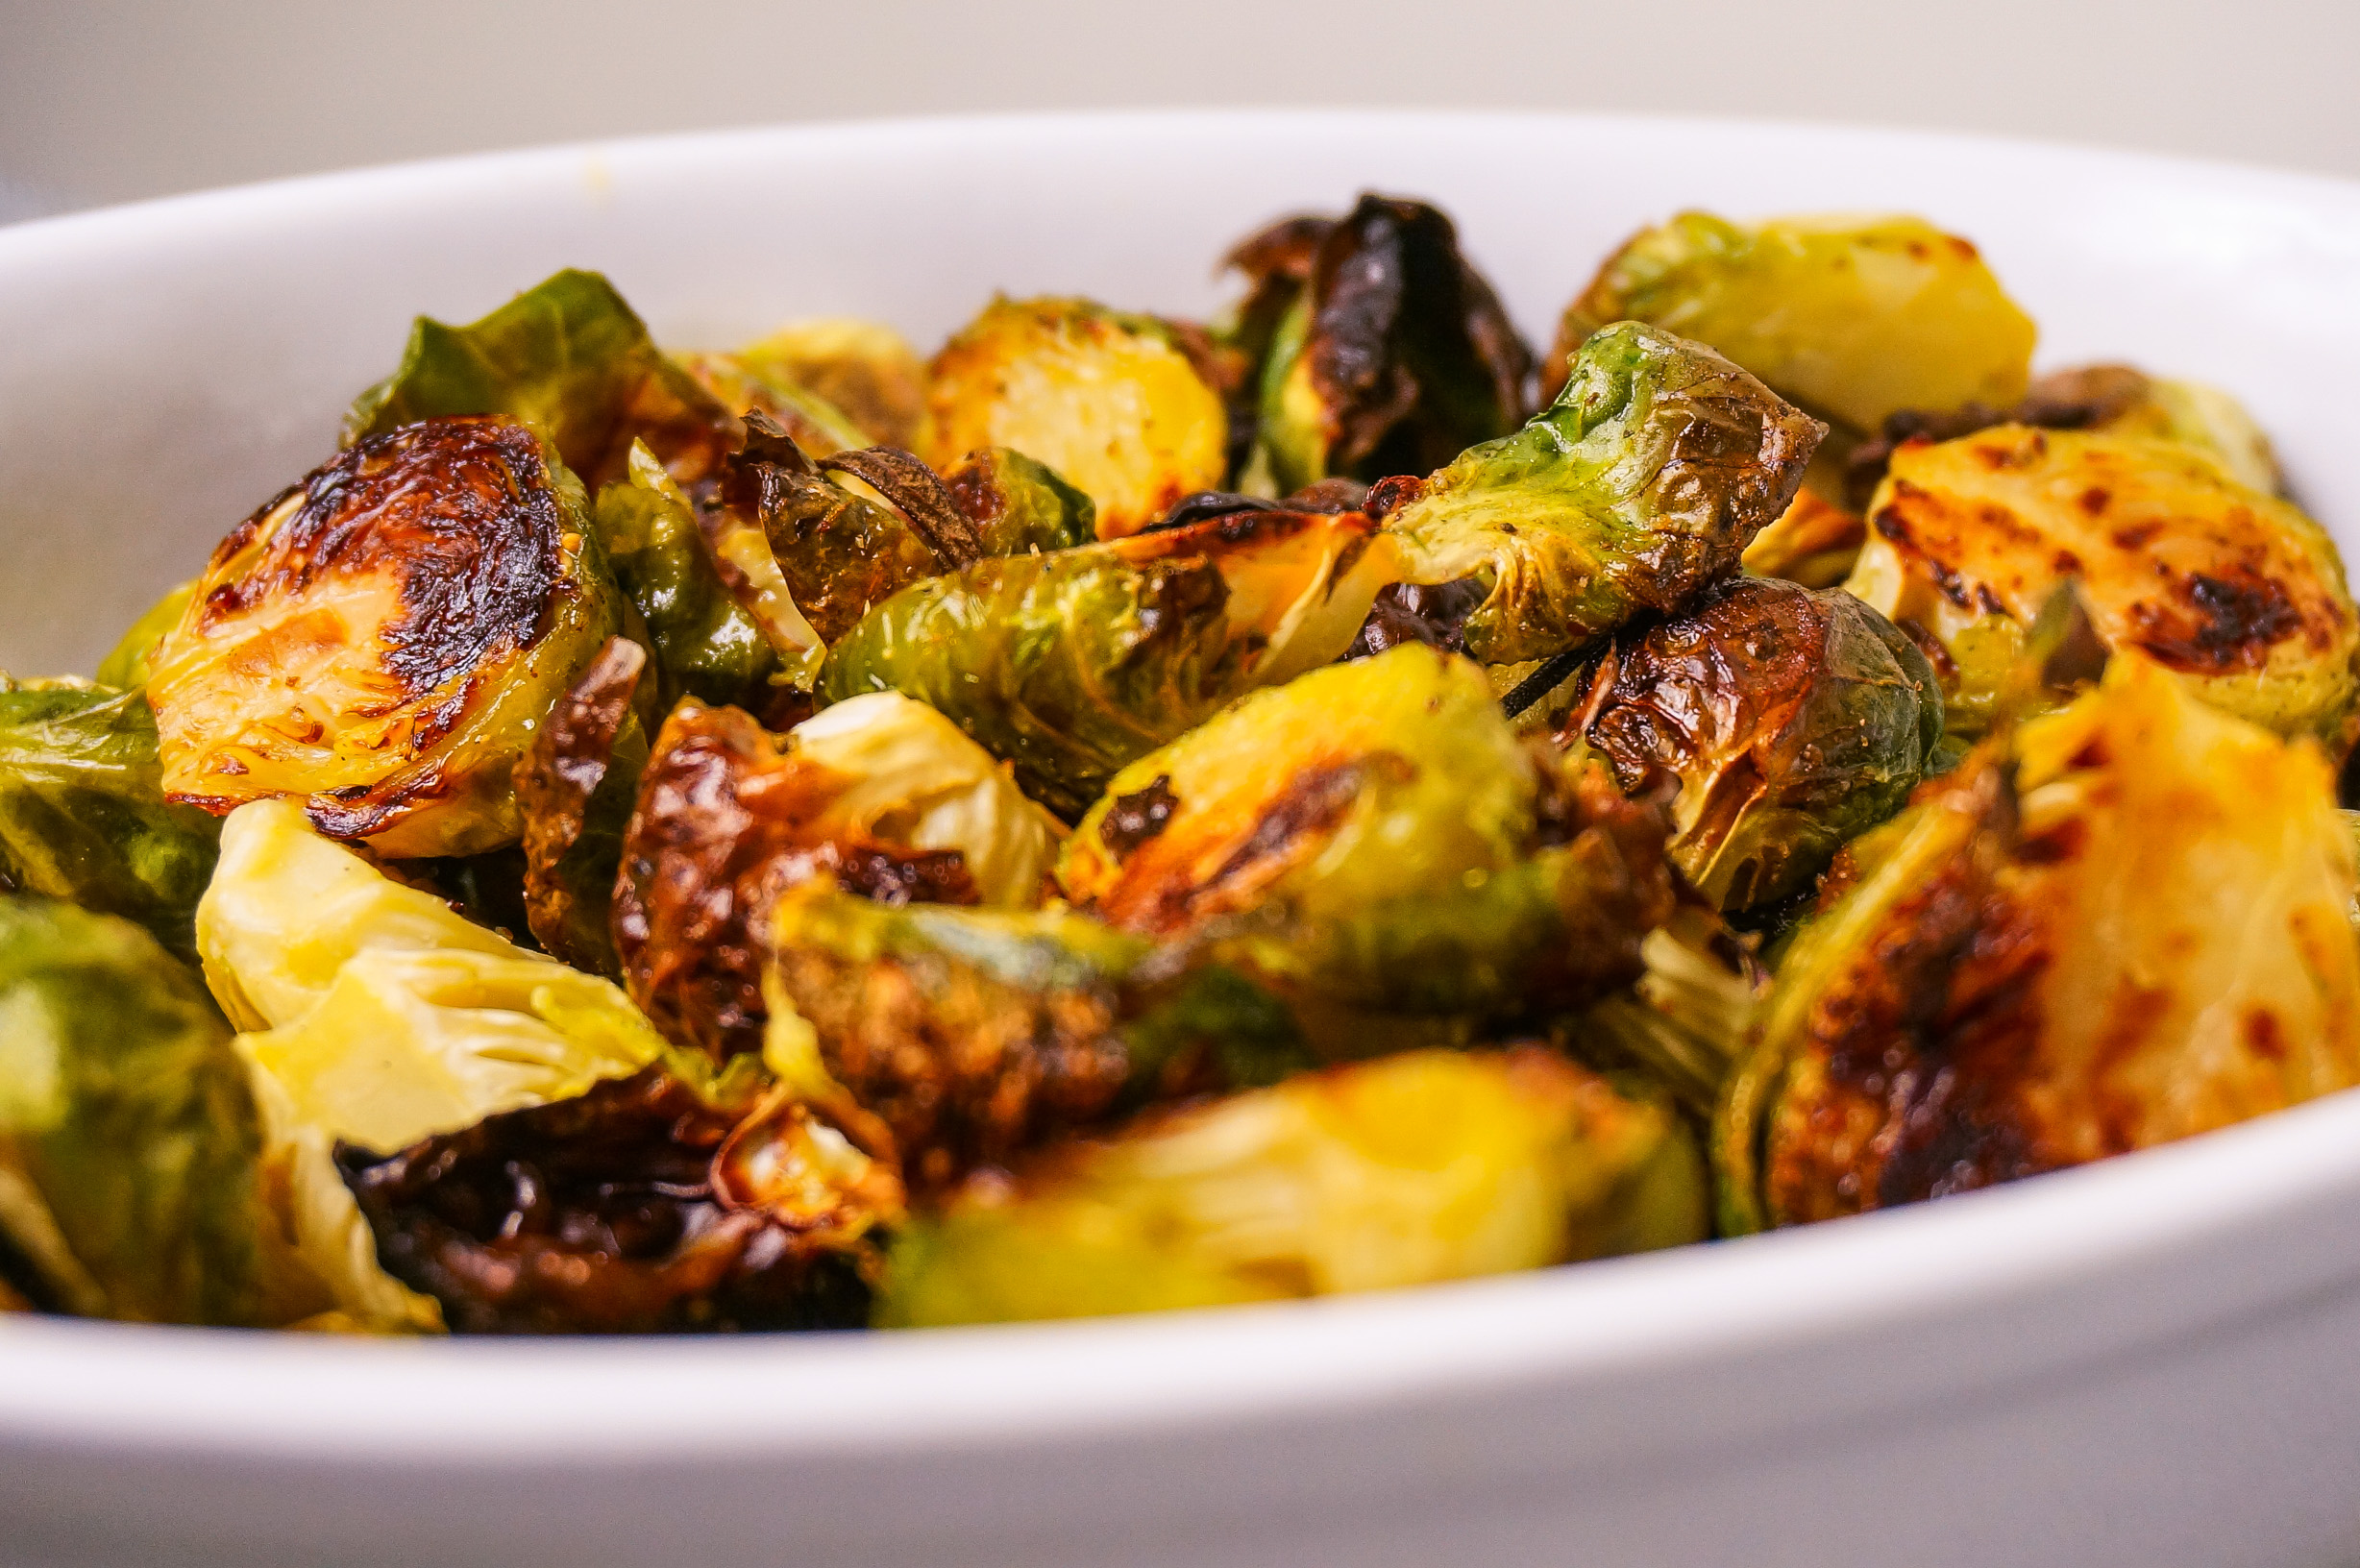 Brined brussels sprouts